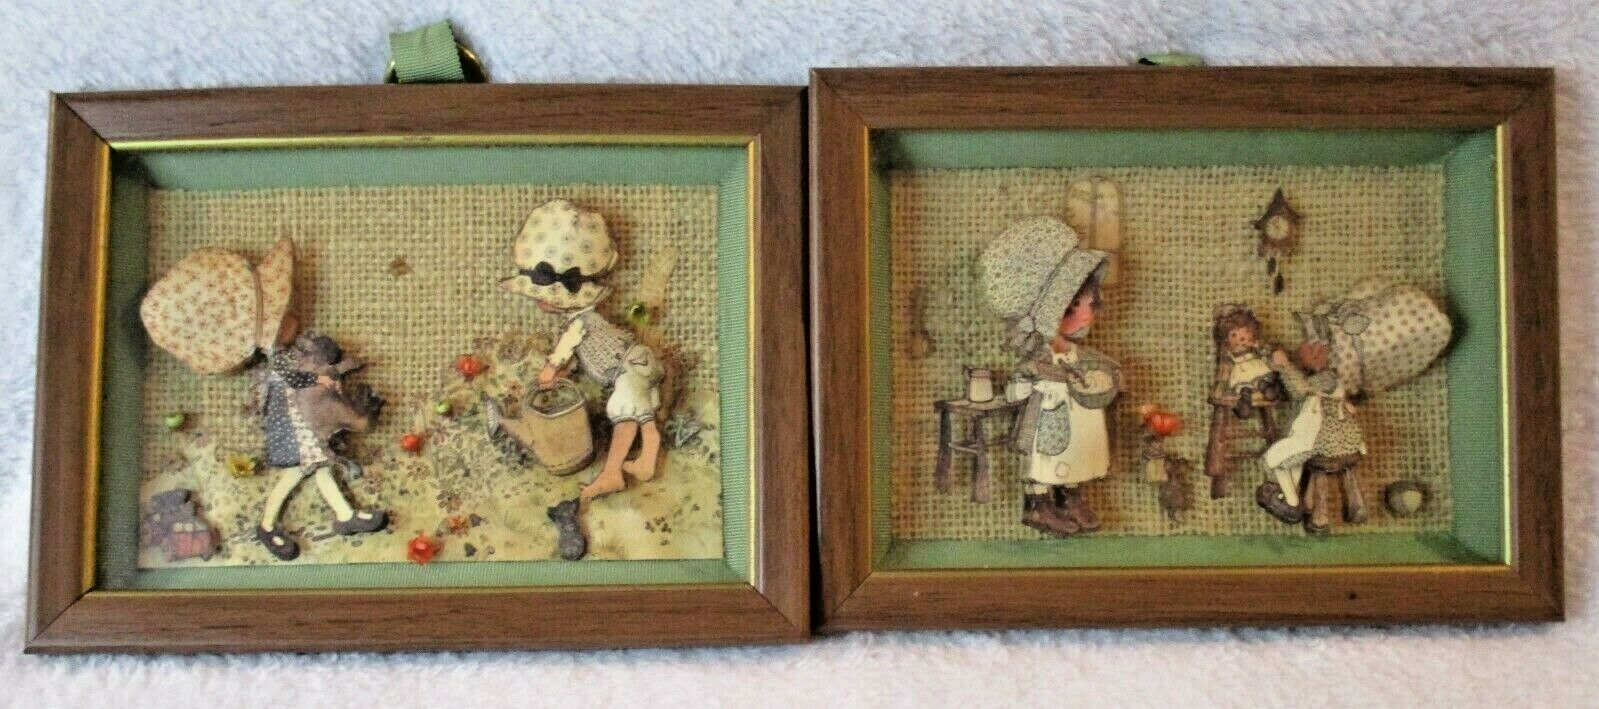 Lot Of 2 Vintage 3-D Layered Paper Holly Hobbie Art Picture Shadow Boxes Frames - $20.00